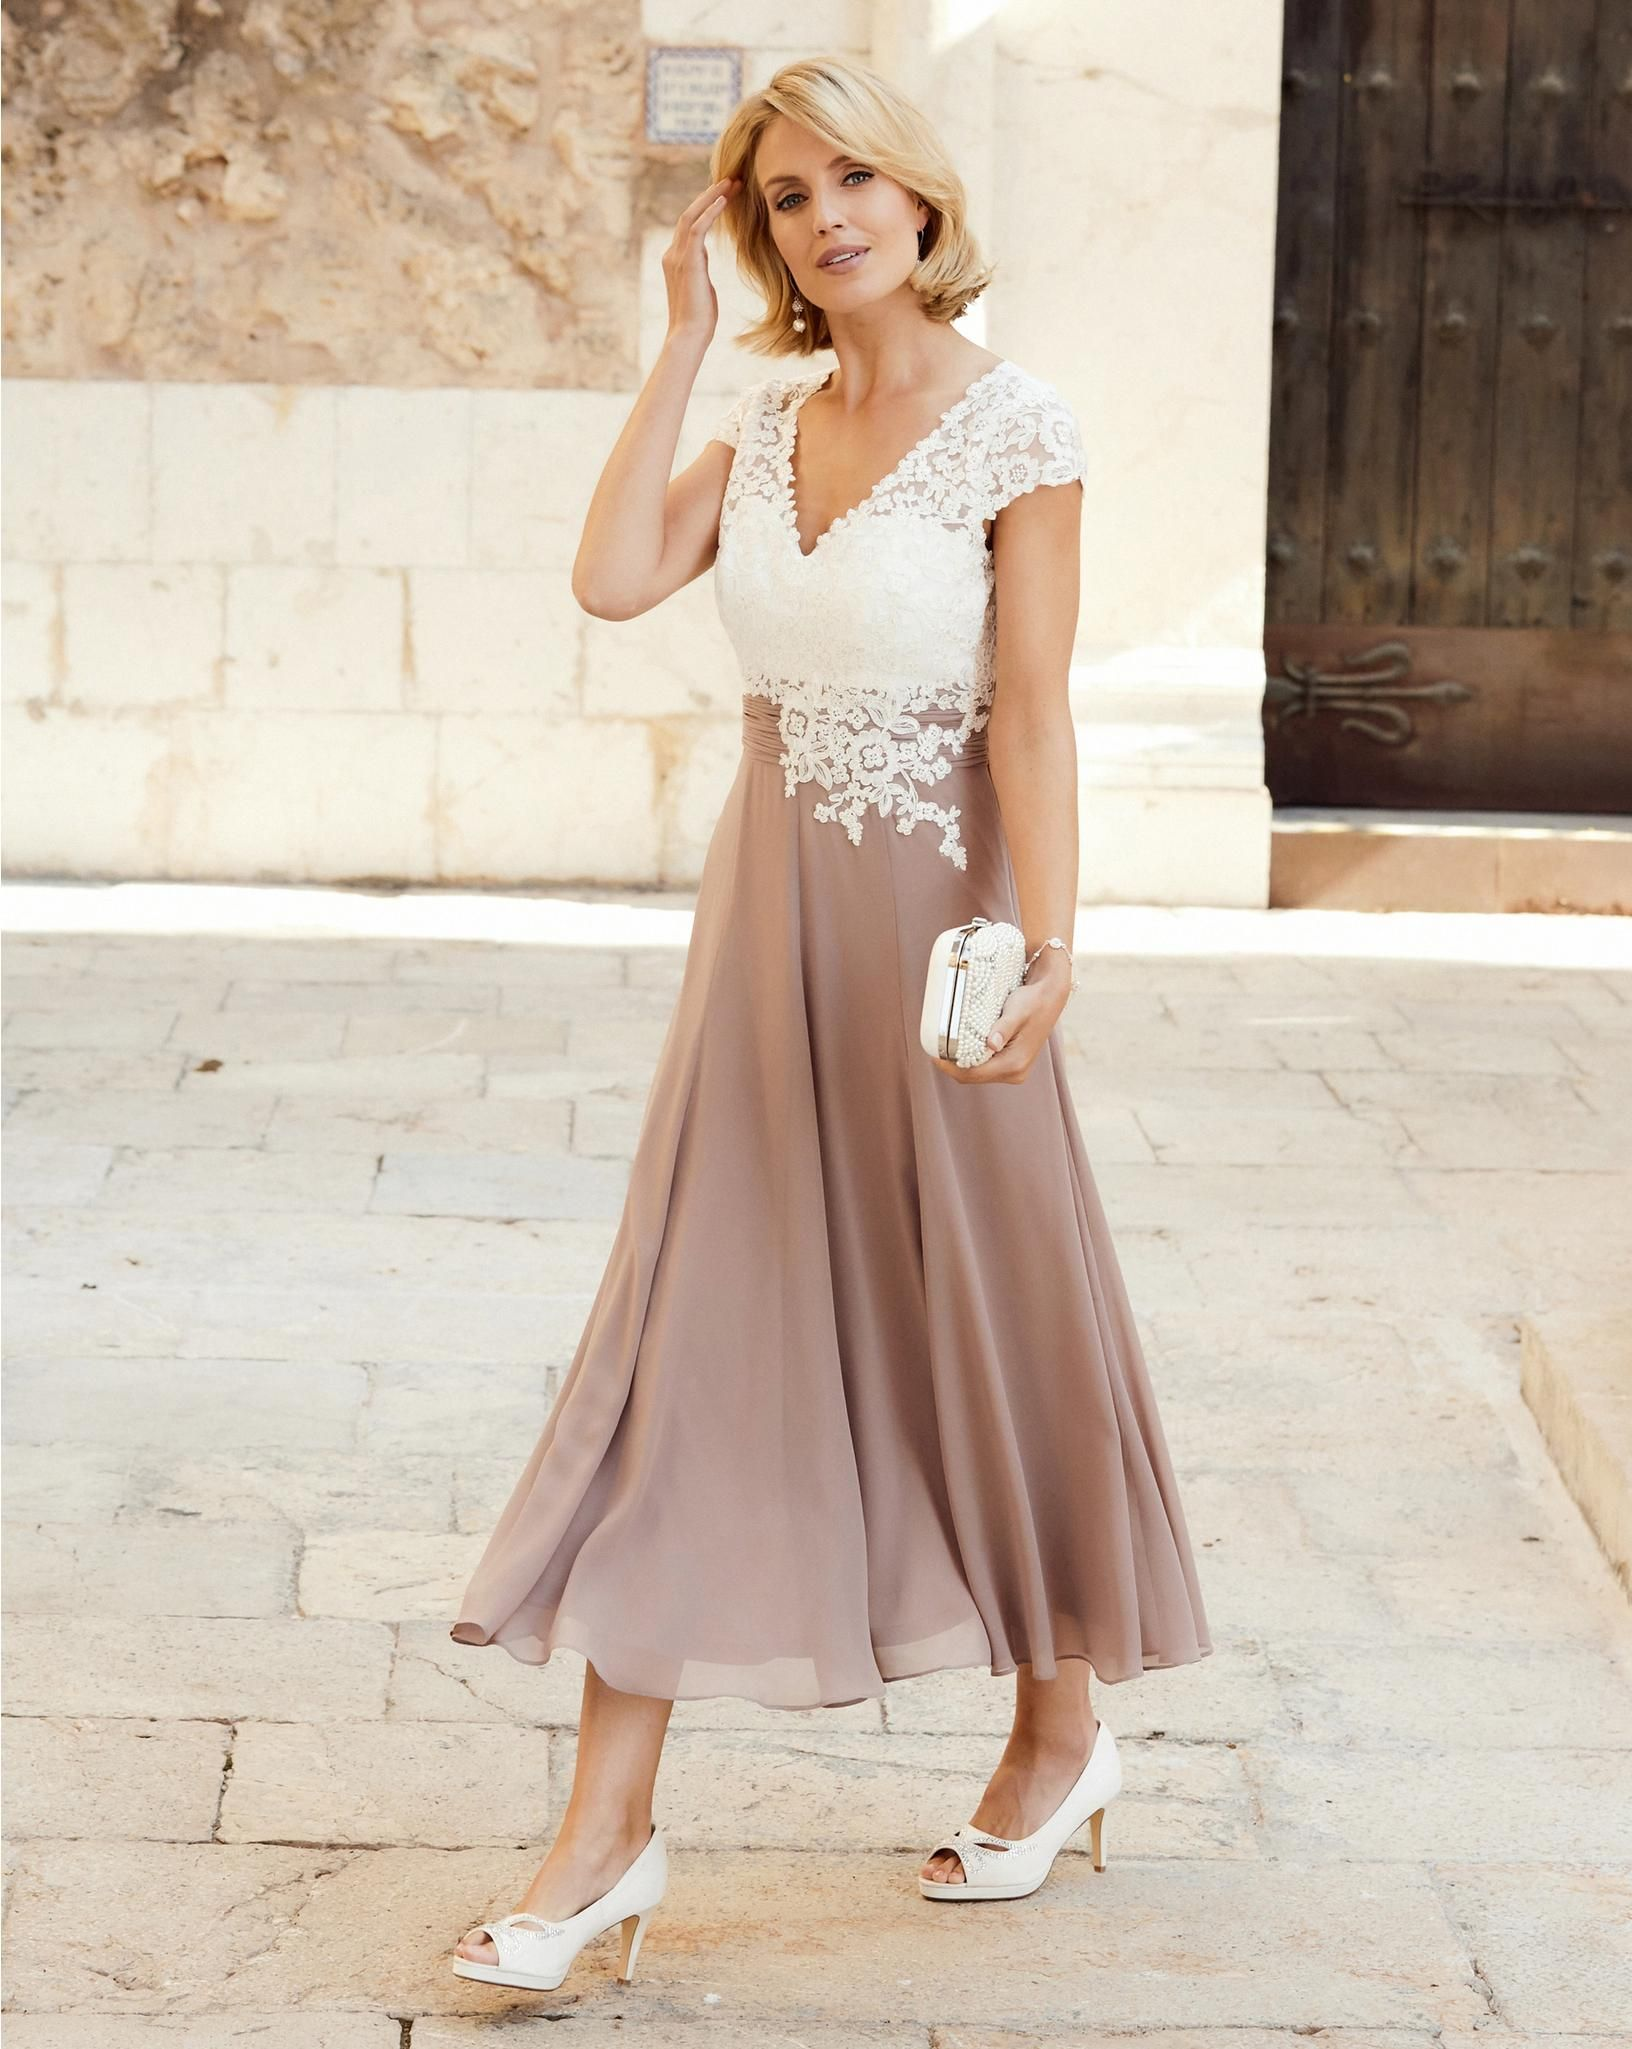 088f5618e5 Nightingales Dress With Lace Detail in 2019